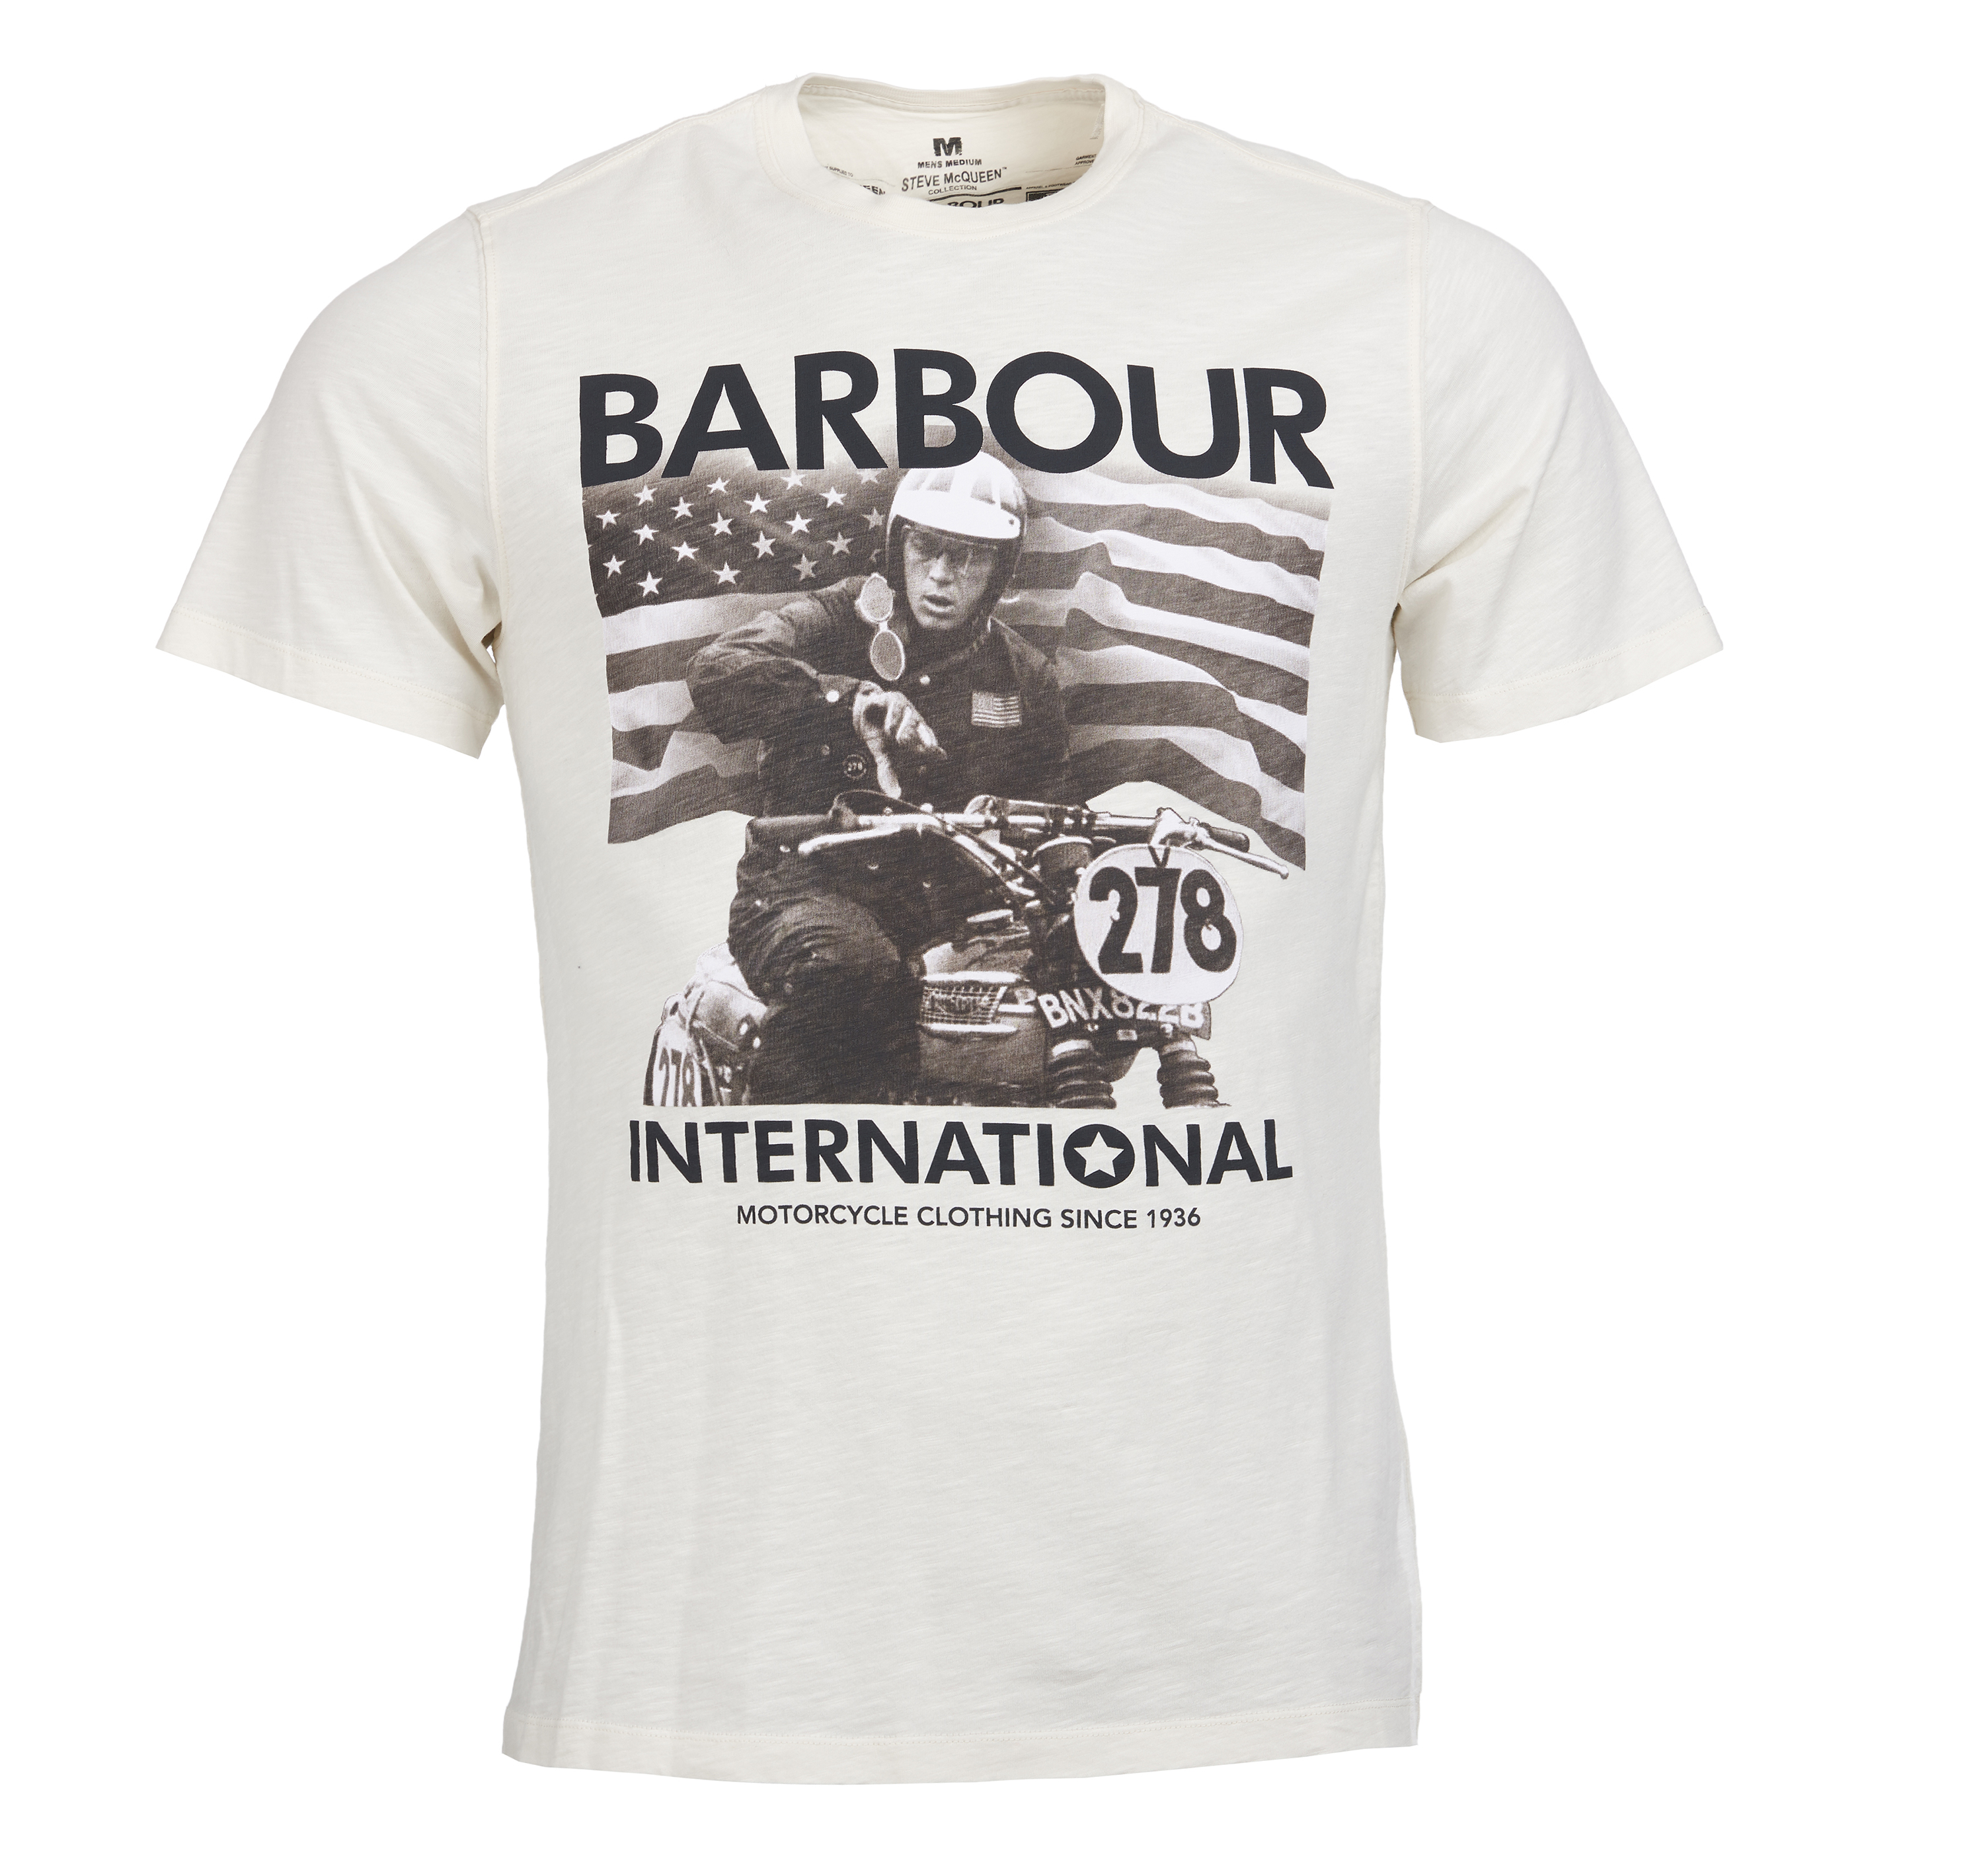 Barbour 278 Time T-Shirt Barbour International From Steve McQueen Collection